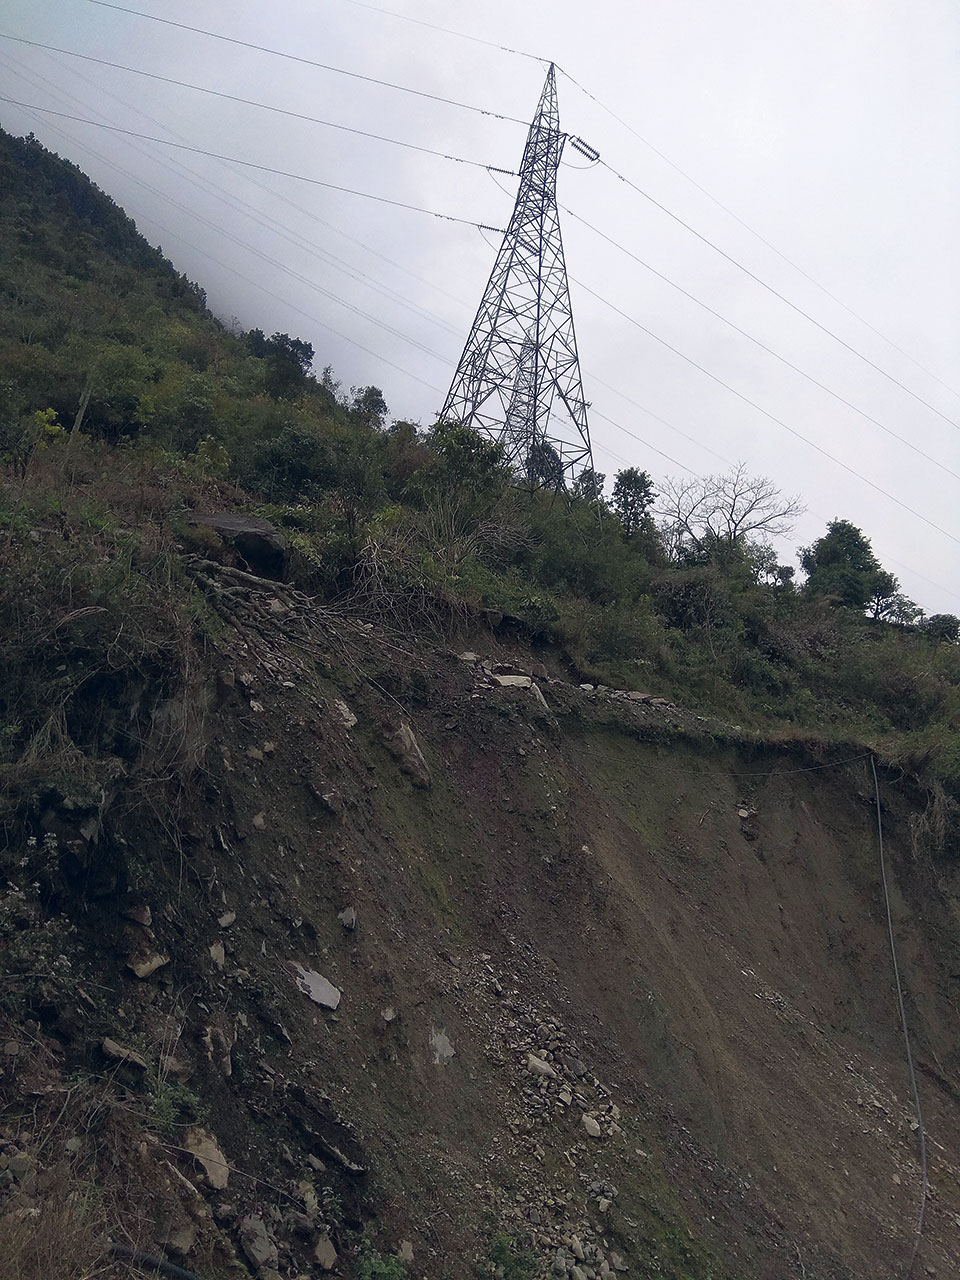 Marsyangdi-Syuchatar transmission line tower faces risk of landslide